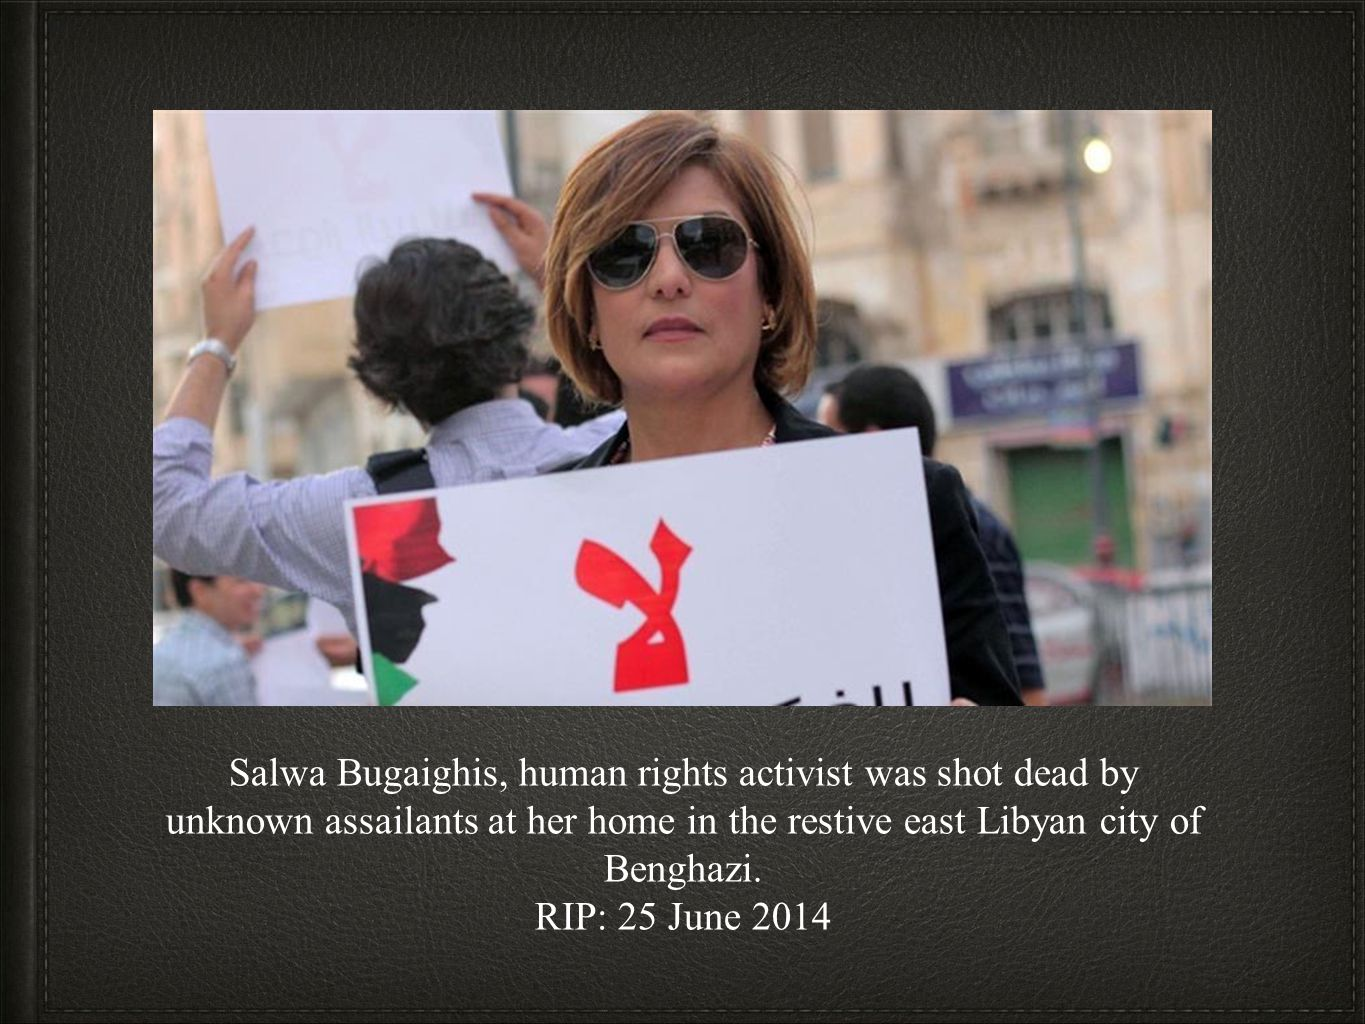 Salwa Bugaighis, human rights activist was shot dead by unknown assailants at her home in the restive east Libyan city of Benghazi.